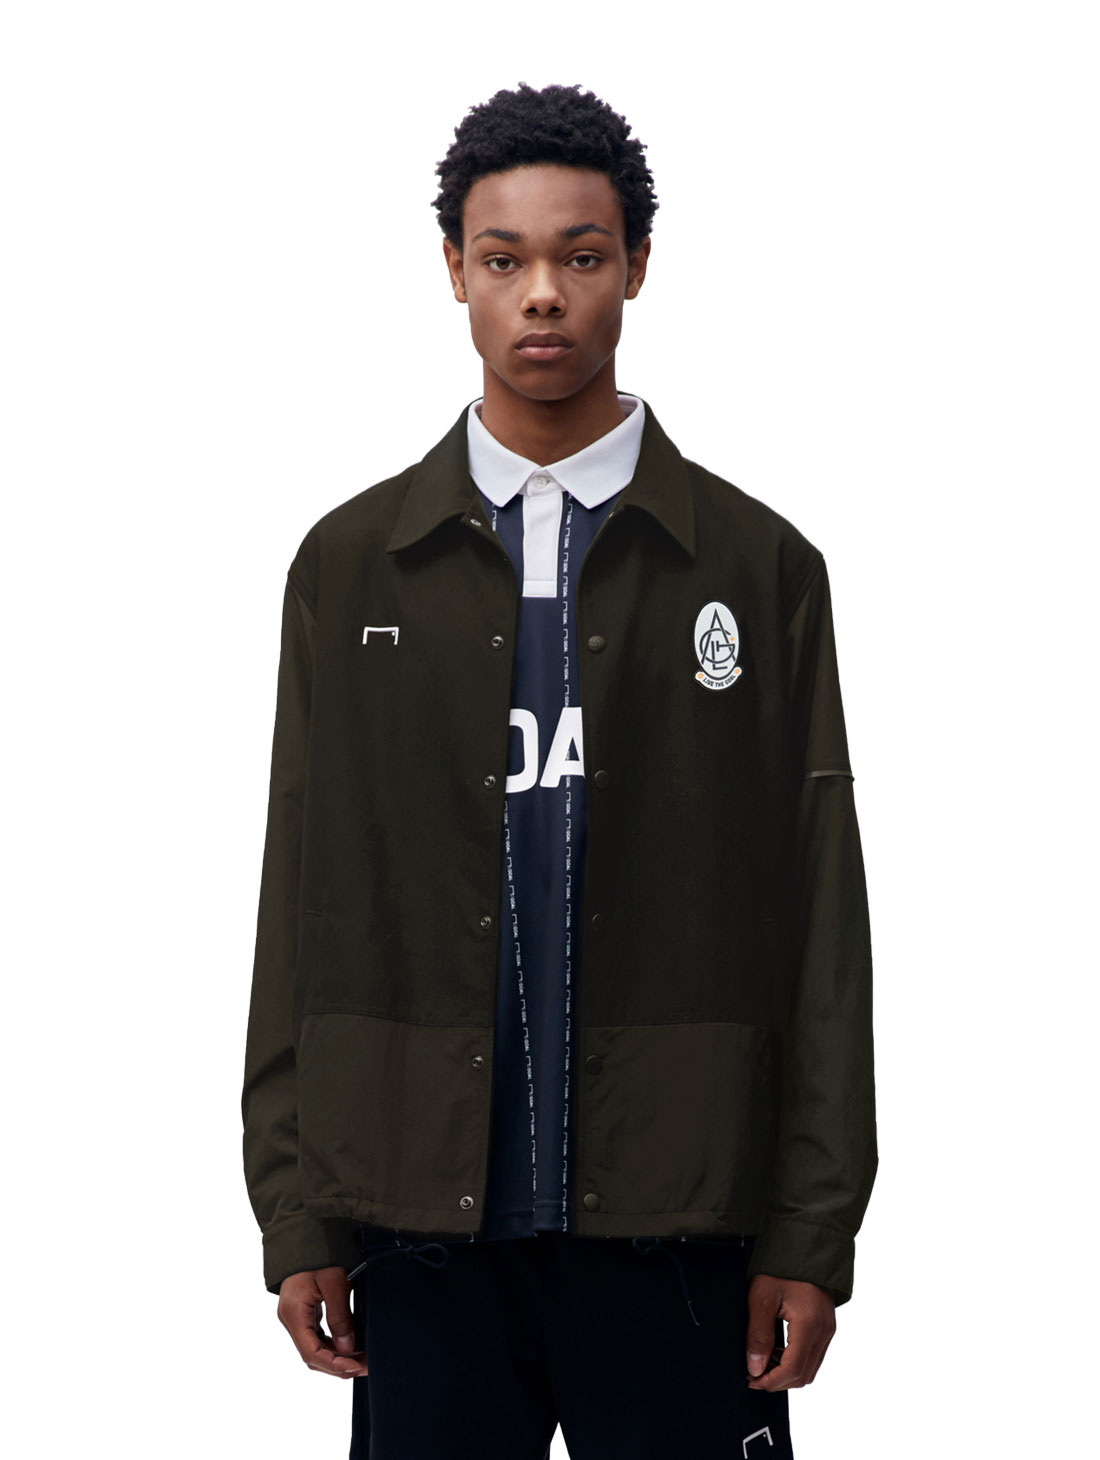 GOALSTUDIO EMBLEM COACH JACKET - KHAKI